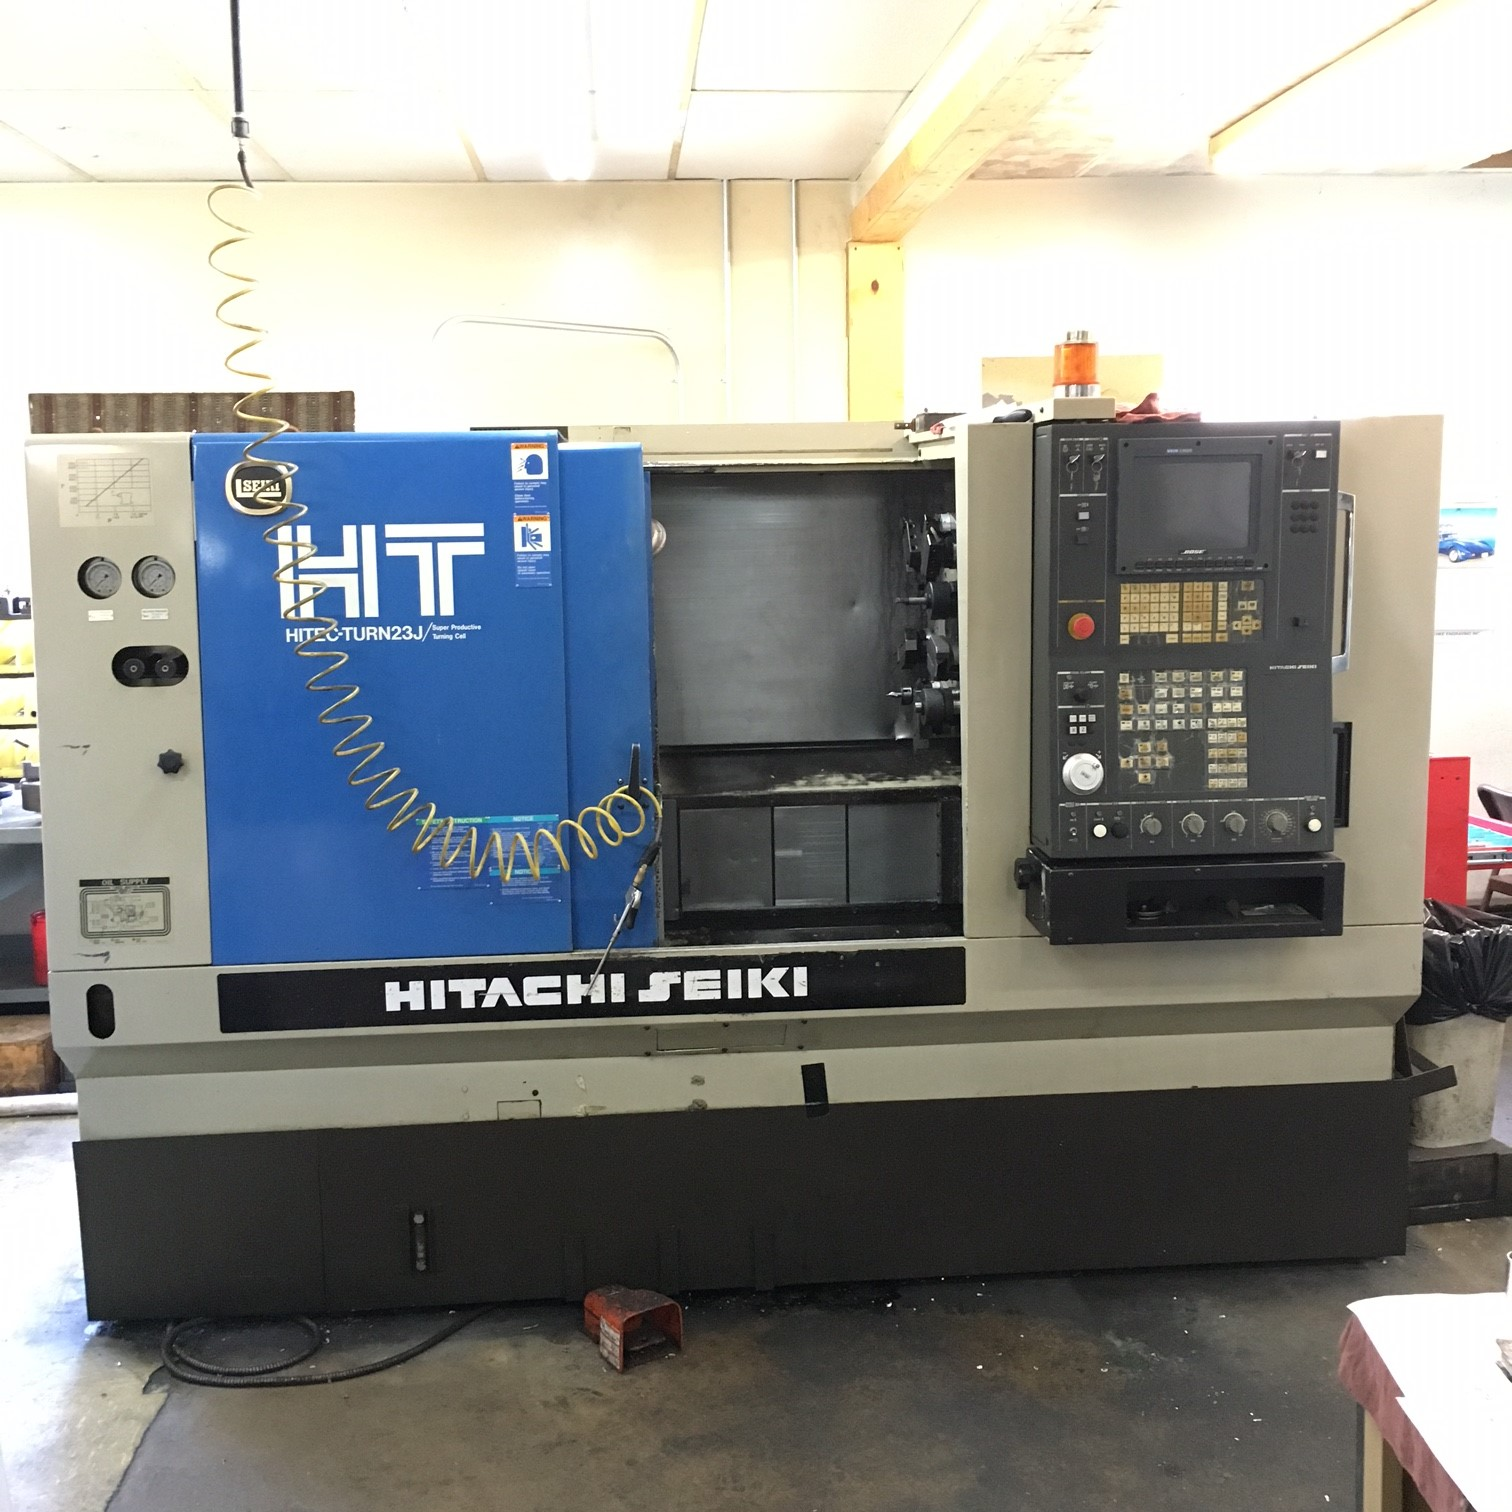 "Hitachi Seiki HT23J, 1998, 17.7"" Swing, 10"" Chuck, 13"" Dia, 24"" Length, 4K RPM, 2.6"" Bar Cap, Seicos J300L Ctrl, Tailstock, Low Hours!"